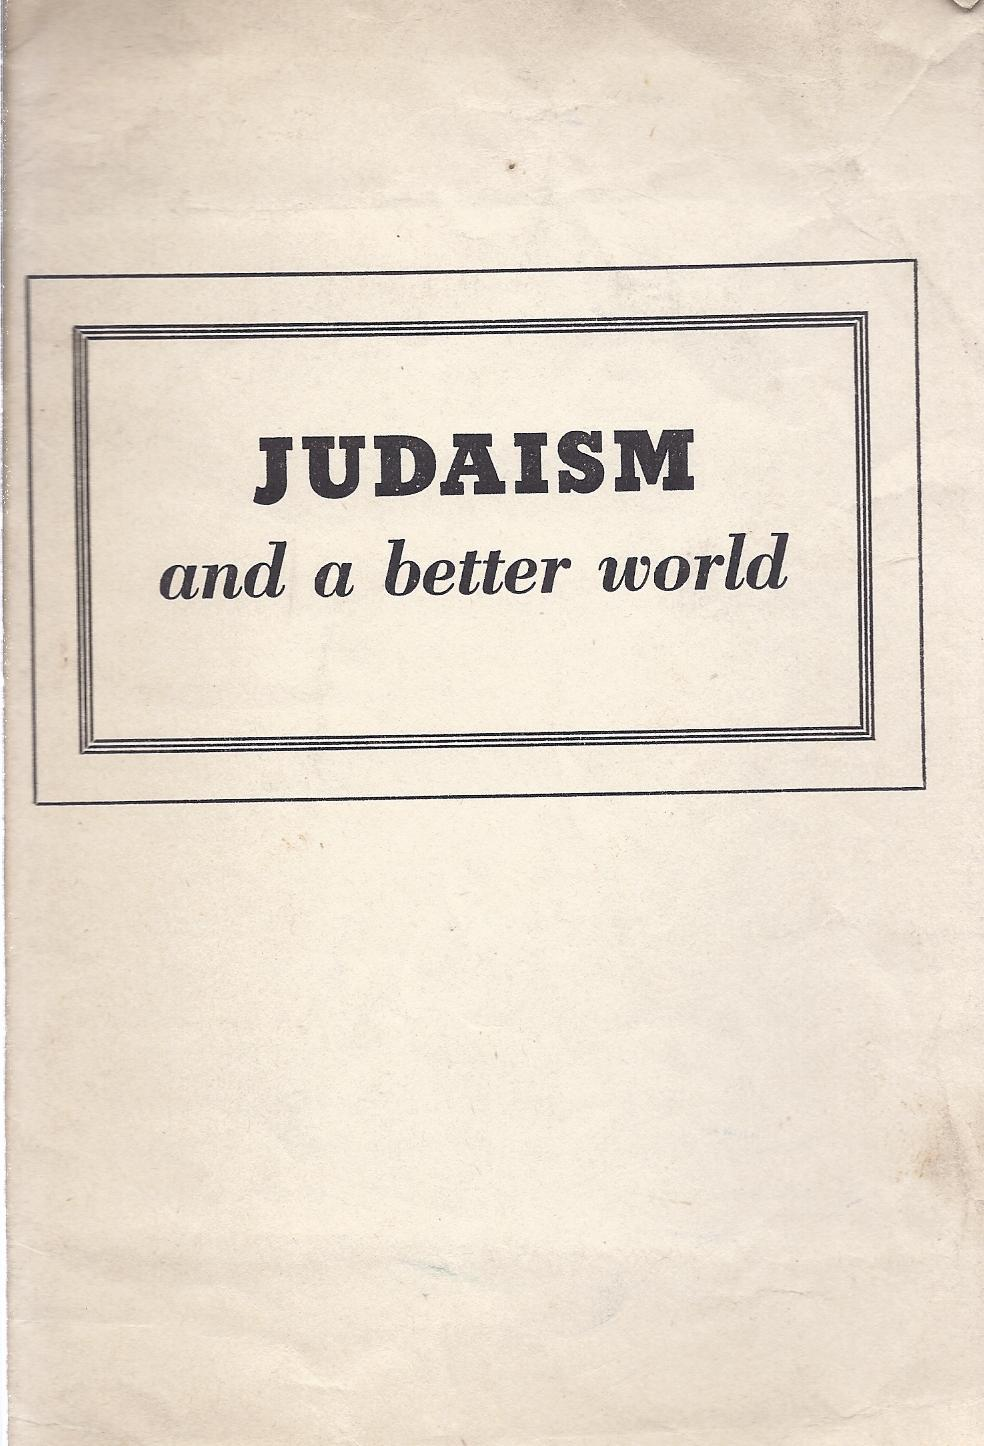 JUDAISM: AND A BETTER WORLD: American Institute Of Judaism and A Just and Enduring Peace